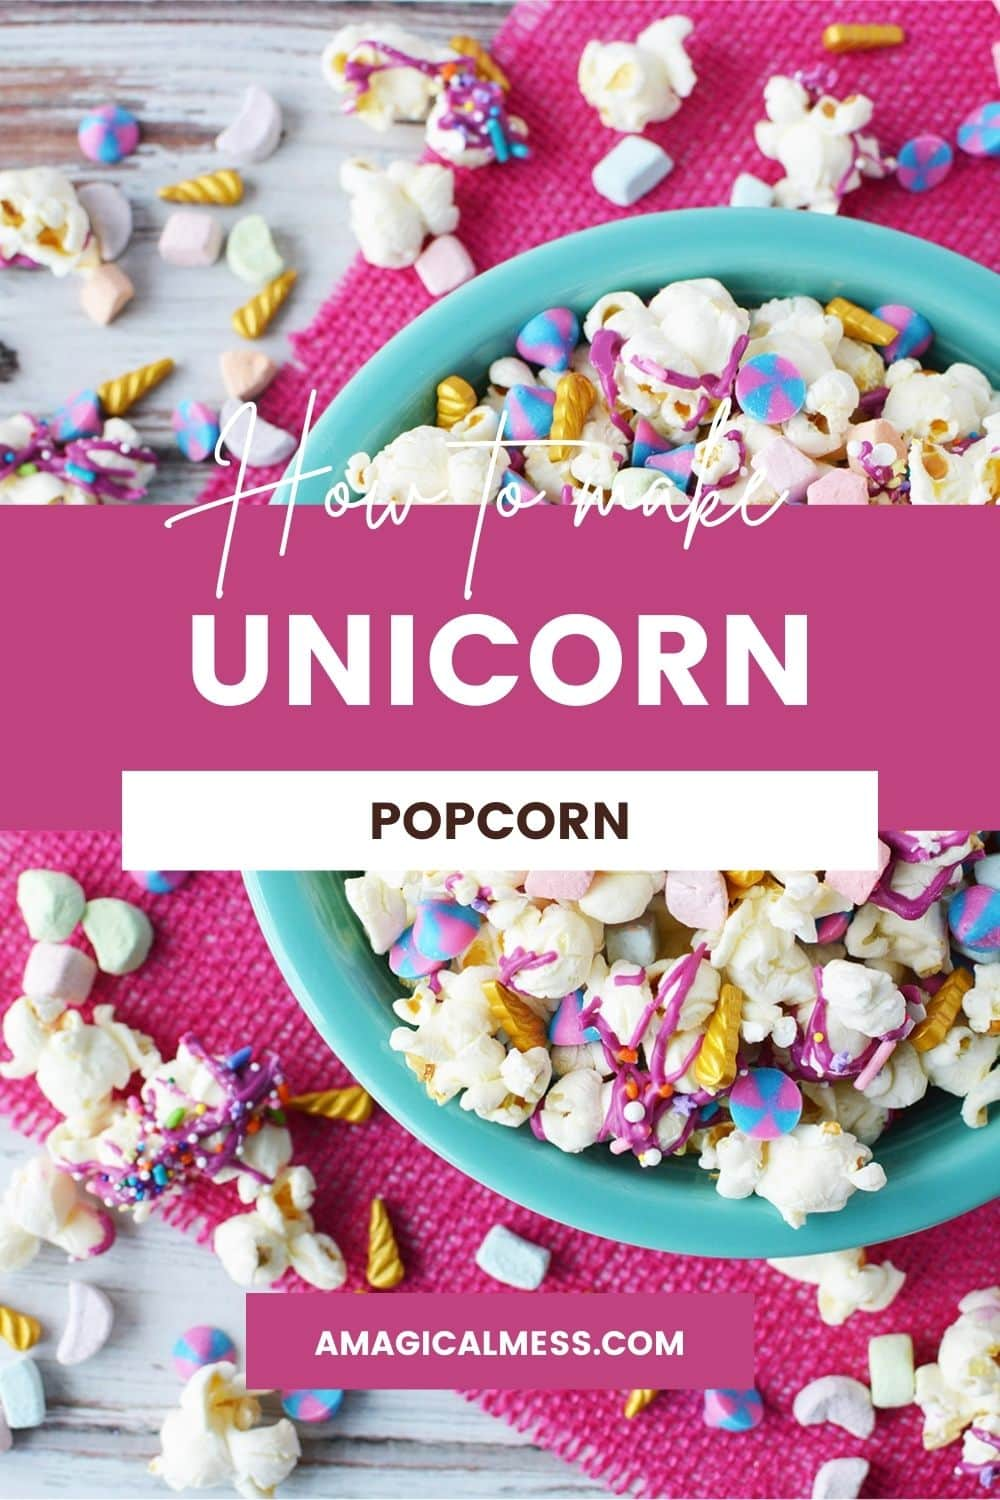 Blue bowl with popcorn and candies with a pink background and more candy on the table.